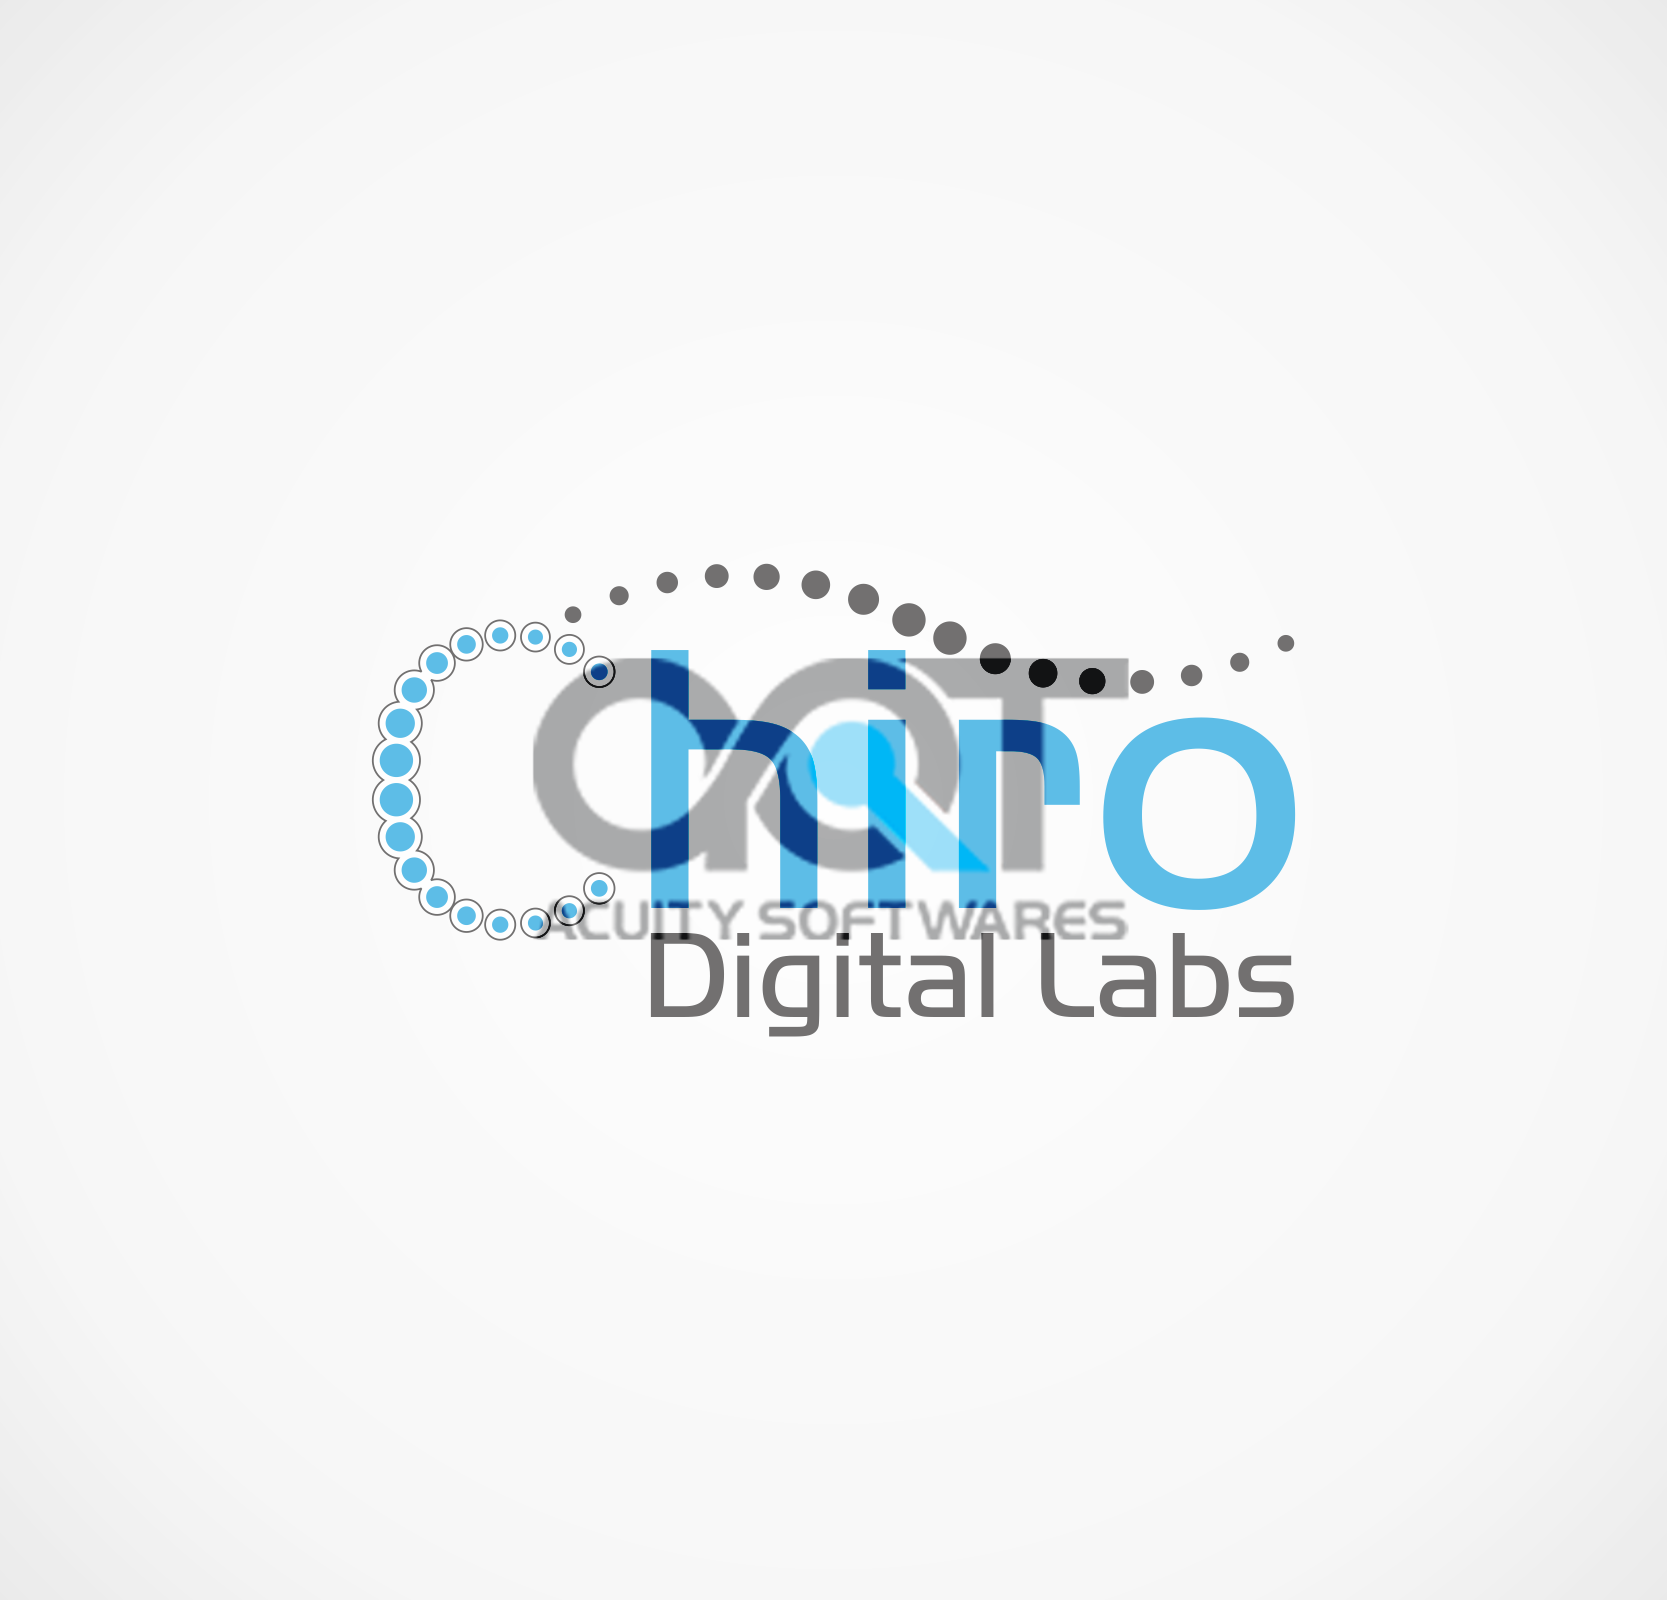 Chiro Digital Labs Logo